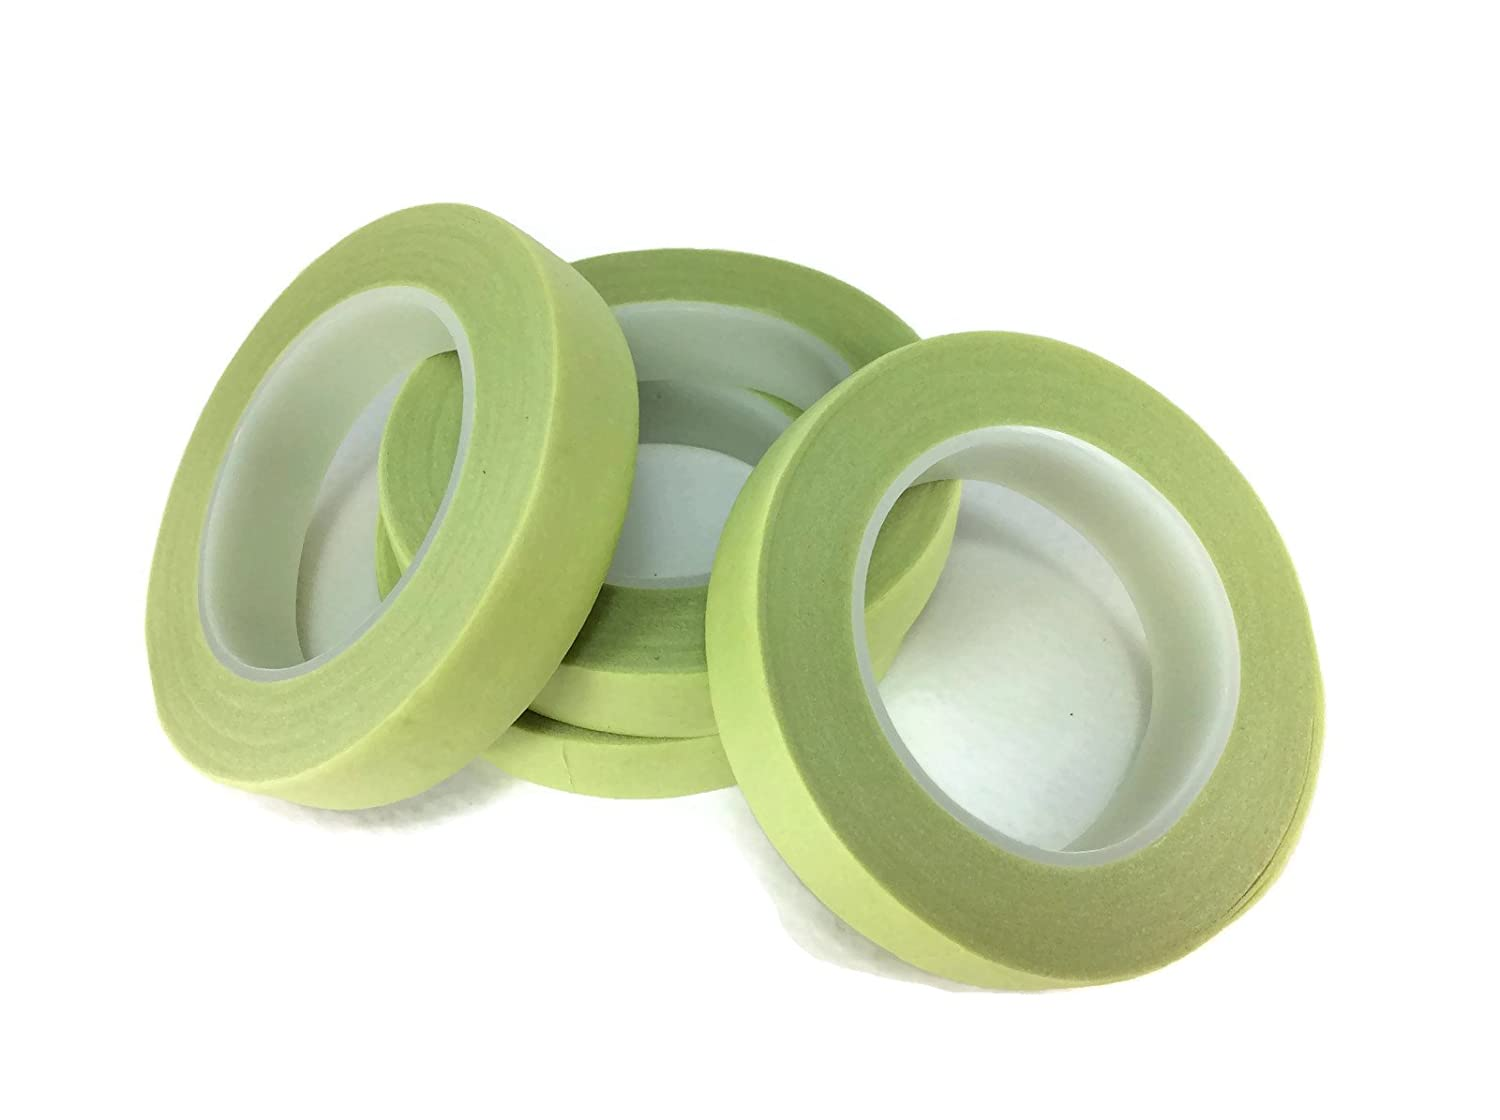 Floral Tape Light Green 4 Rolls 30 Yards Foral Dark Glue Cohesive 12 mm Pair Artificial Flower Stem Tool Thailand